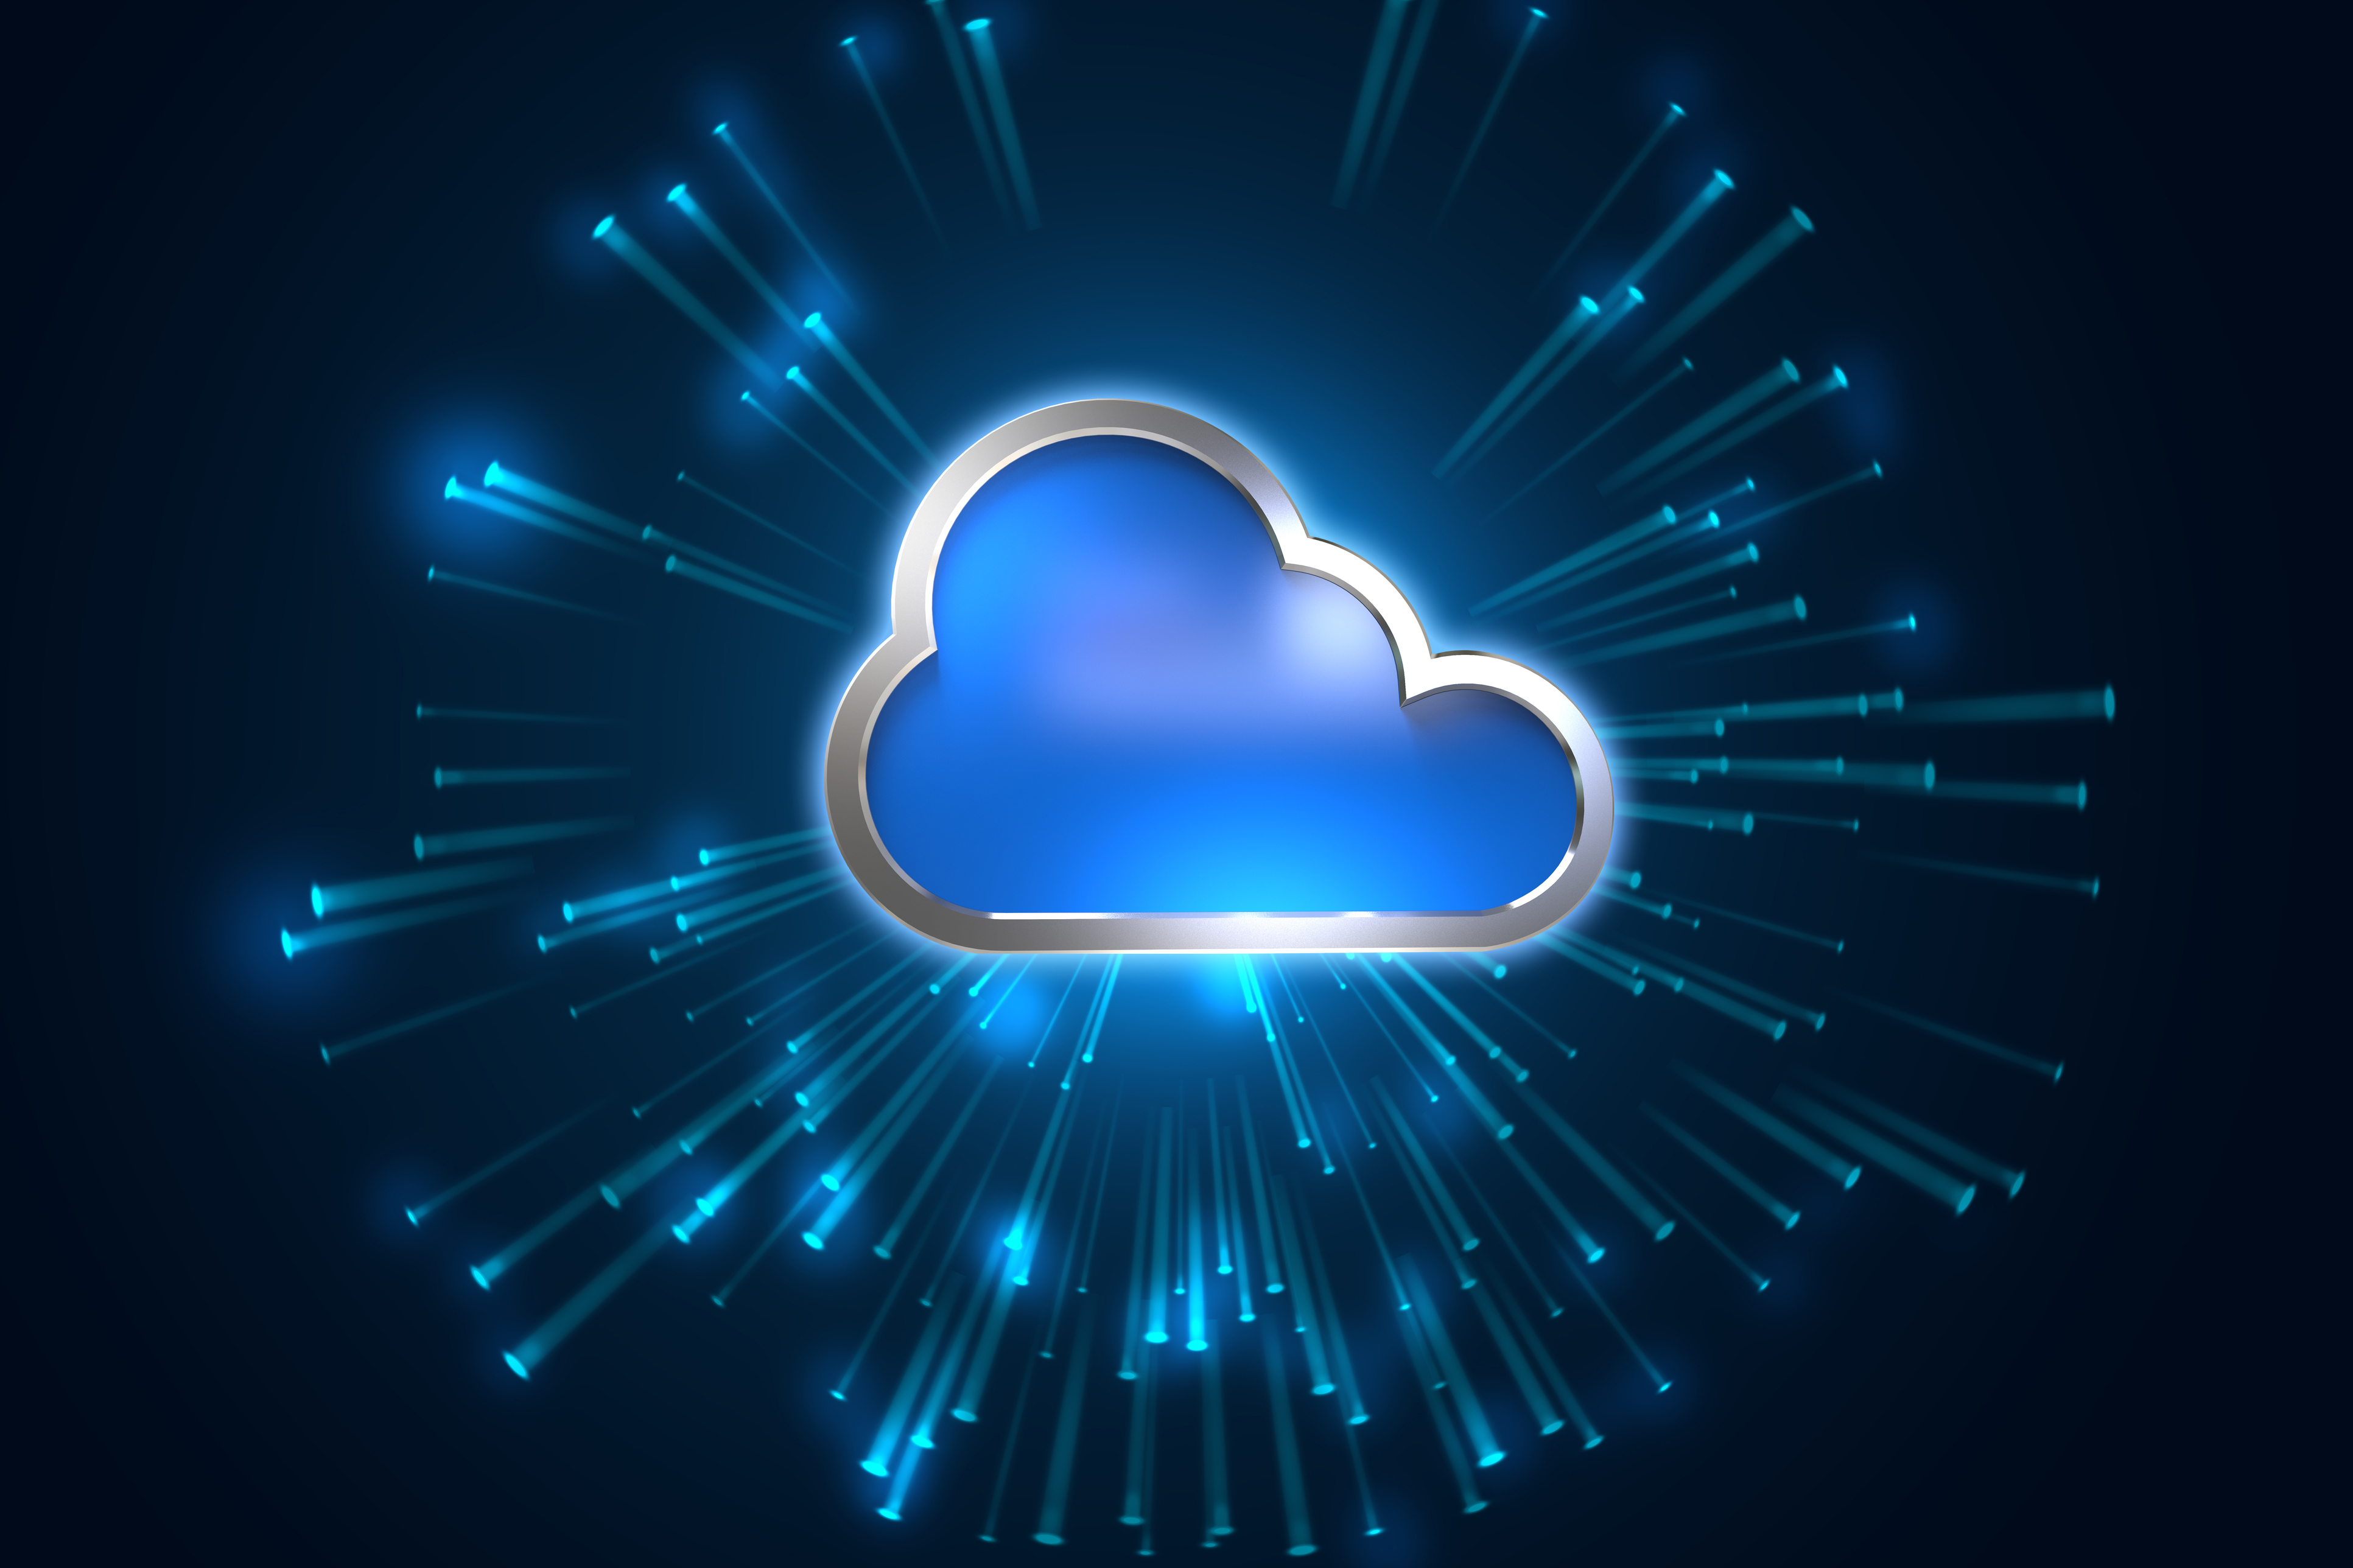 Cloud computing system abstract technology background   OnX 3865x2576